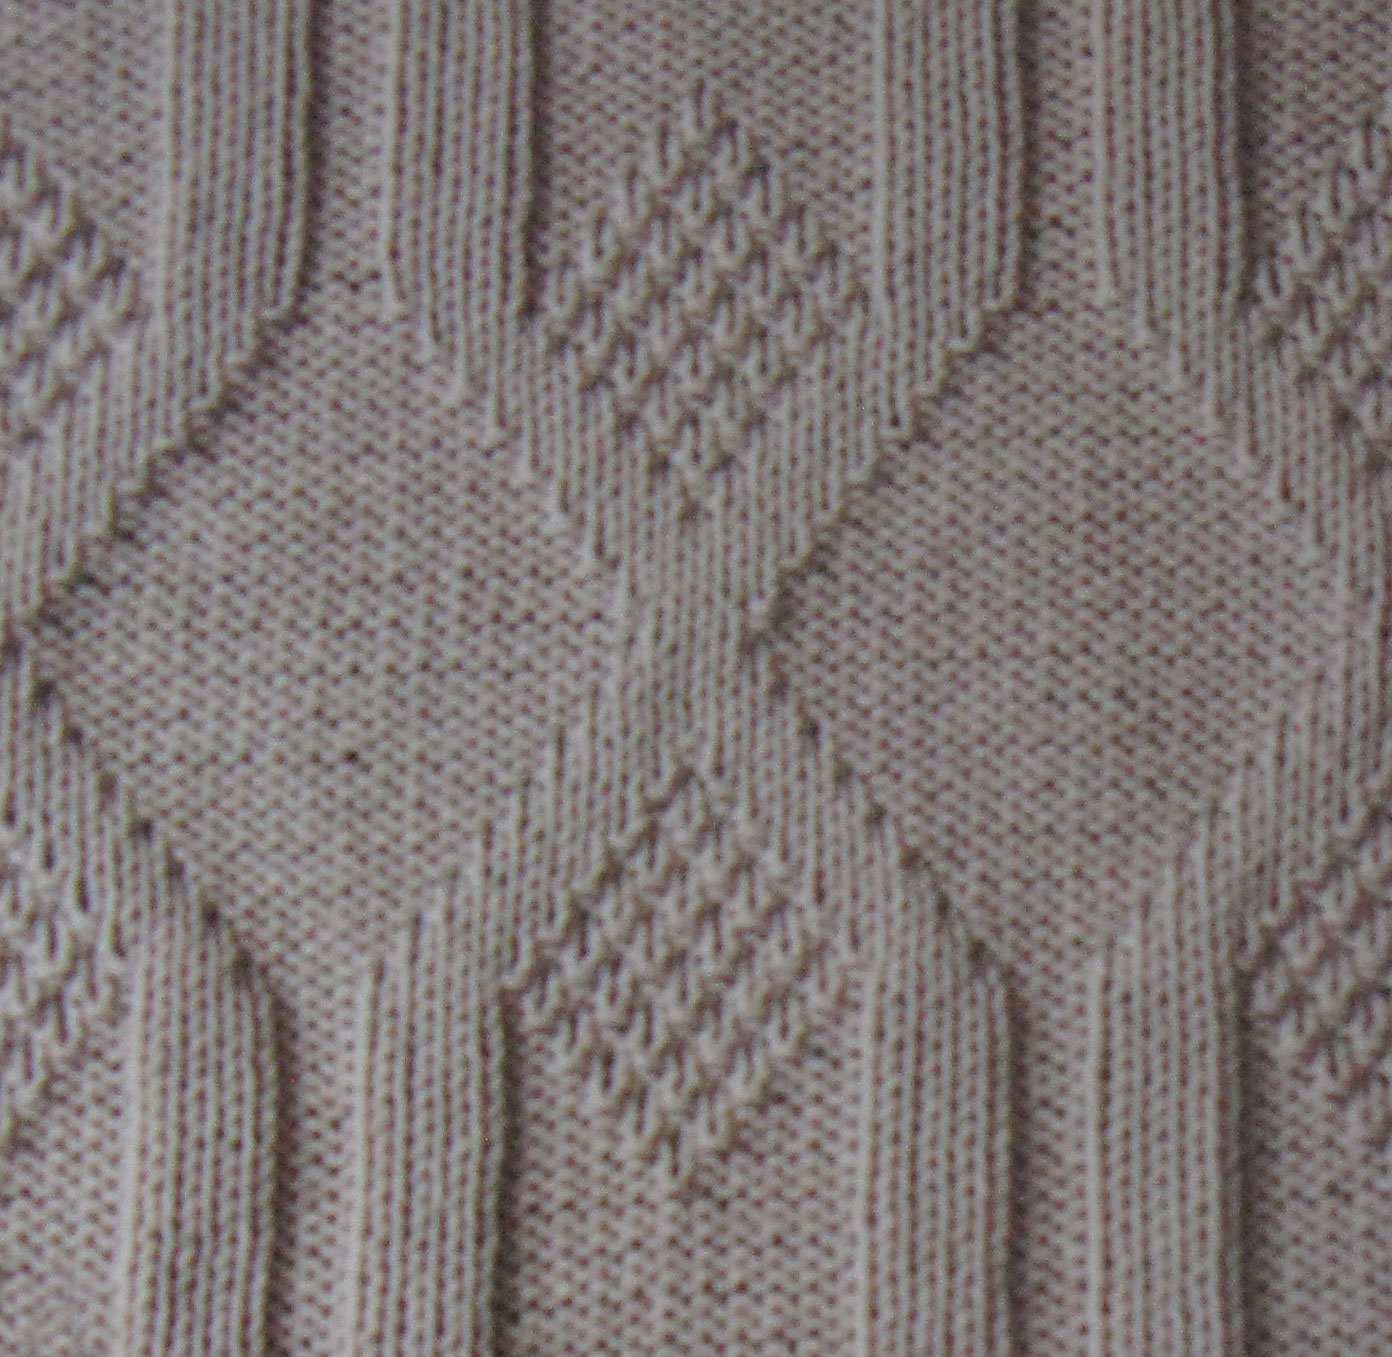 Knitting Stitches Knit And Purl : Vertical Diamonds Knit and Purl Stitch - Knitting Kingdom